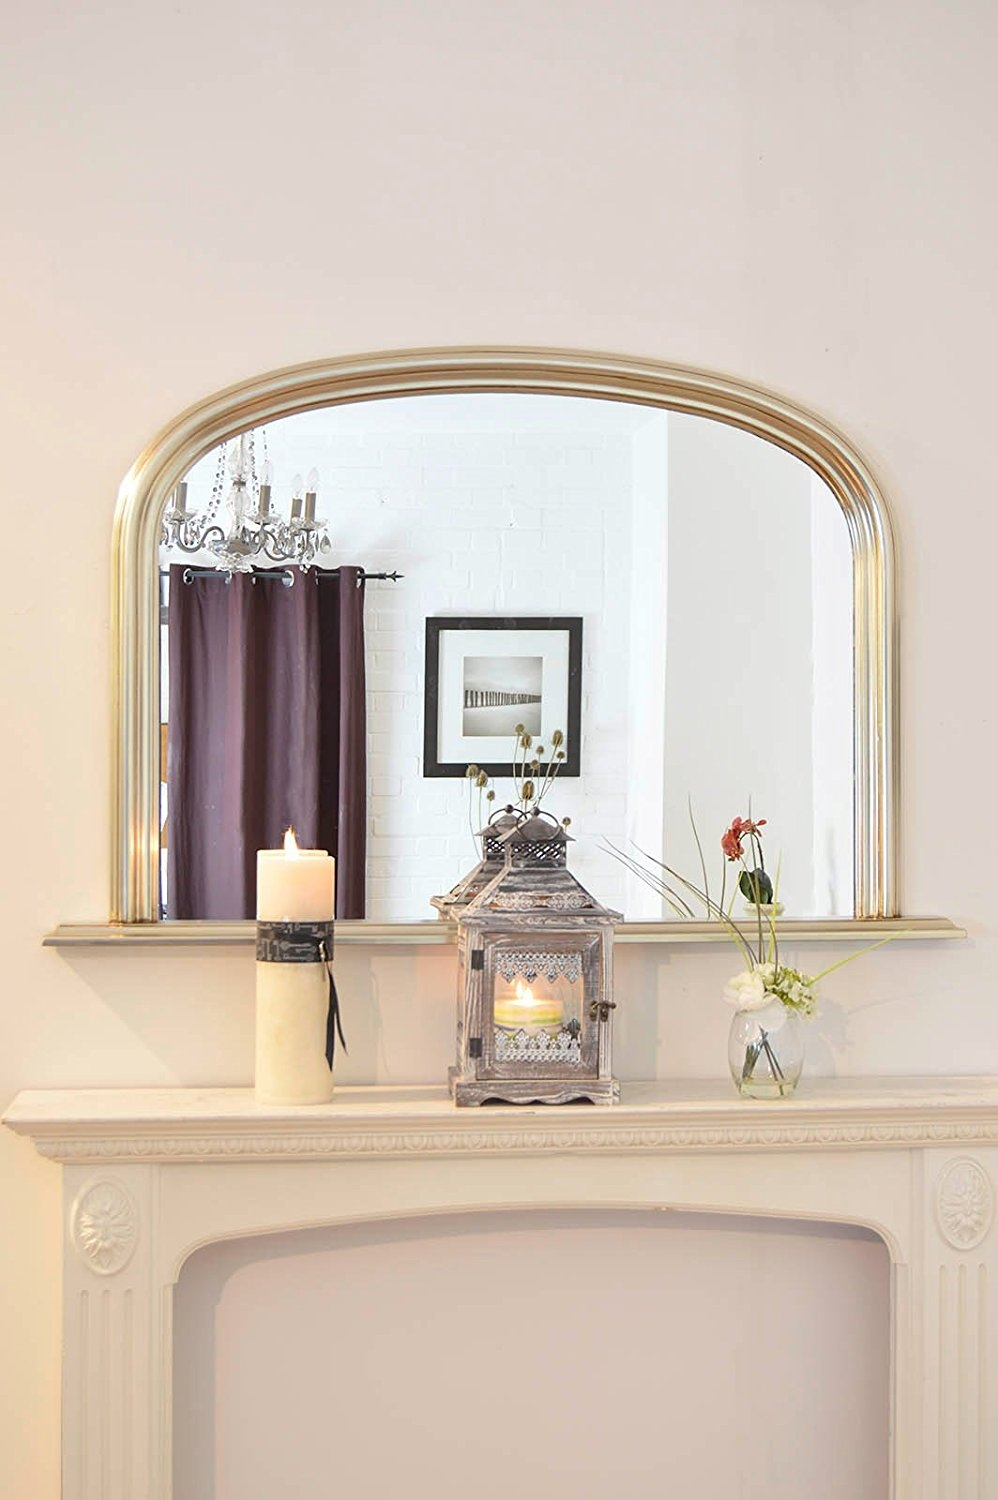 Classic French Inspired White Overmantle Mirror With Elegant Inside French Inspired Mirrors (Image 9 of 15)